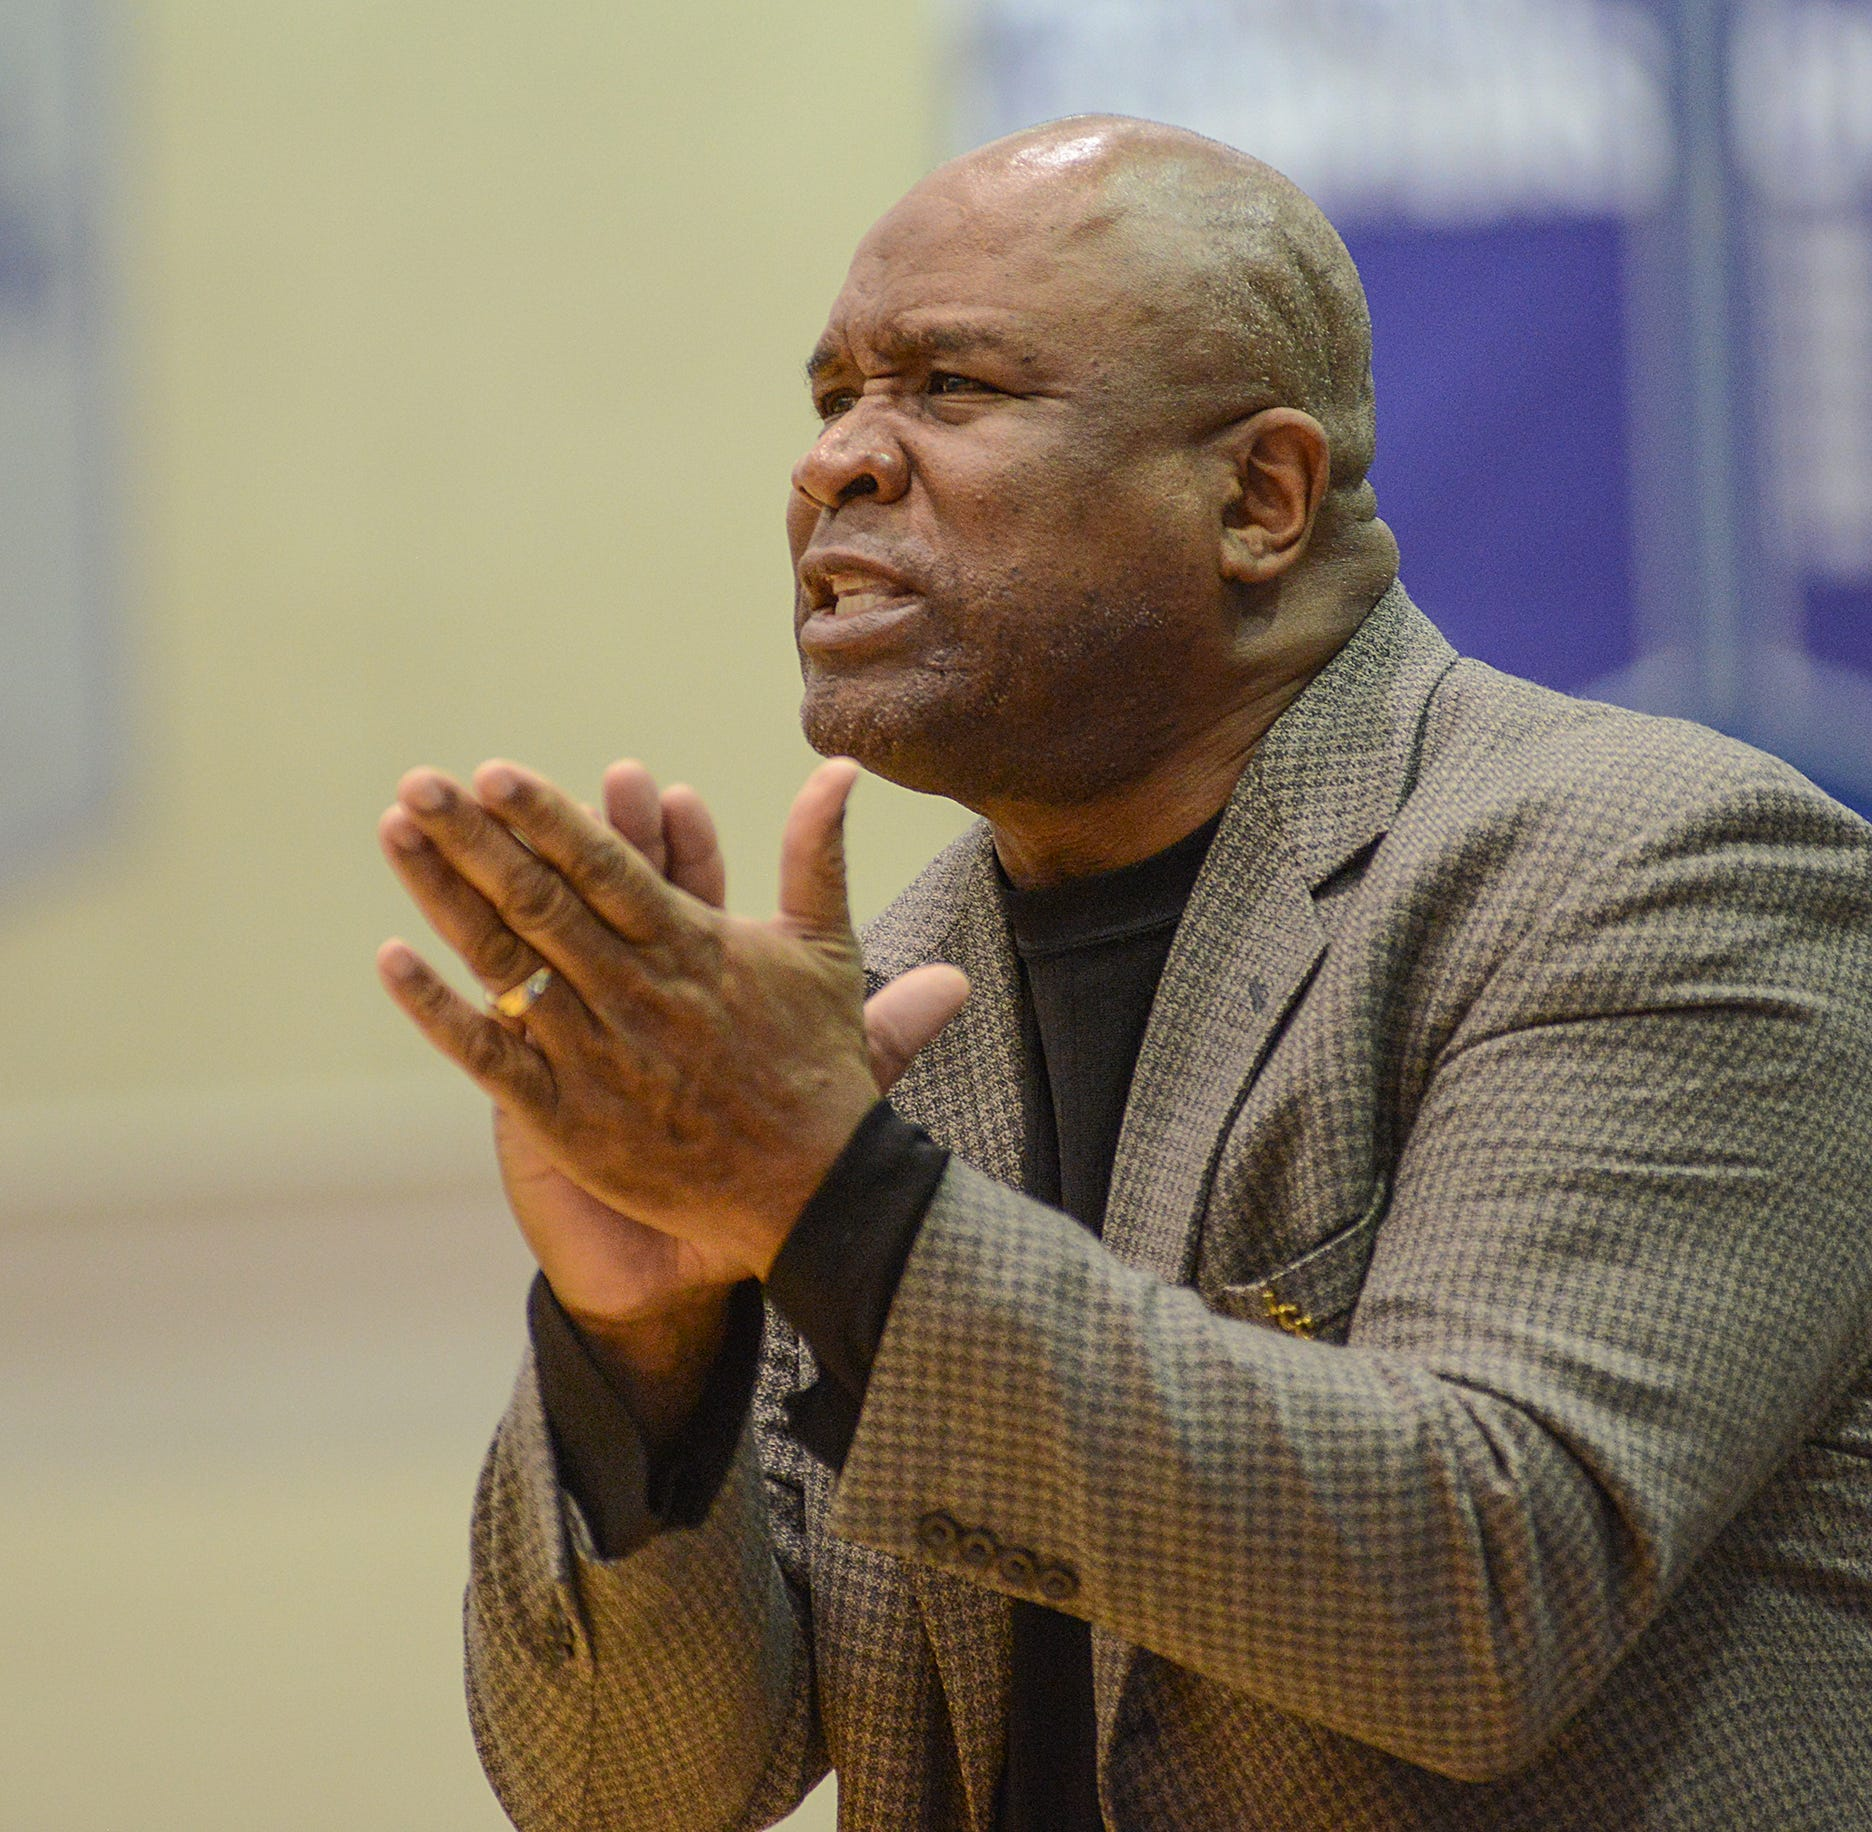 Lansing Community College coach Mike Ingram notches 600th victory: 'I've been blessed' '